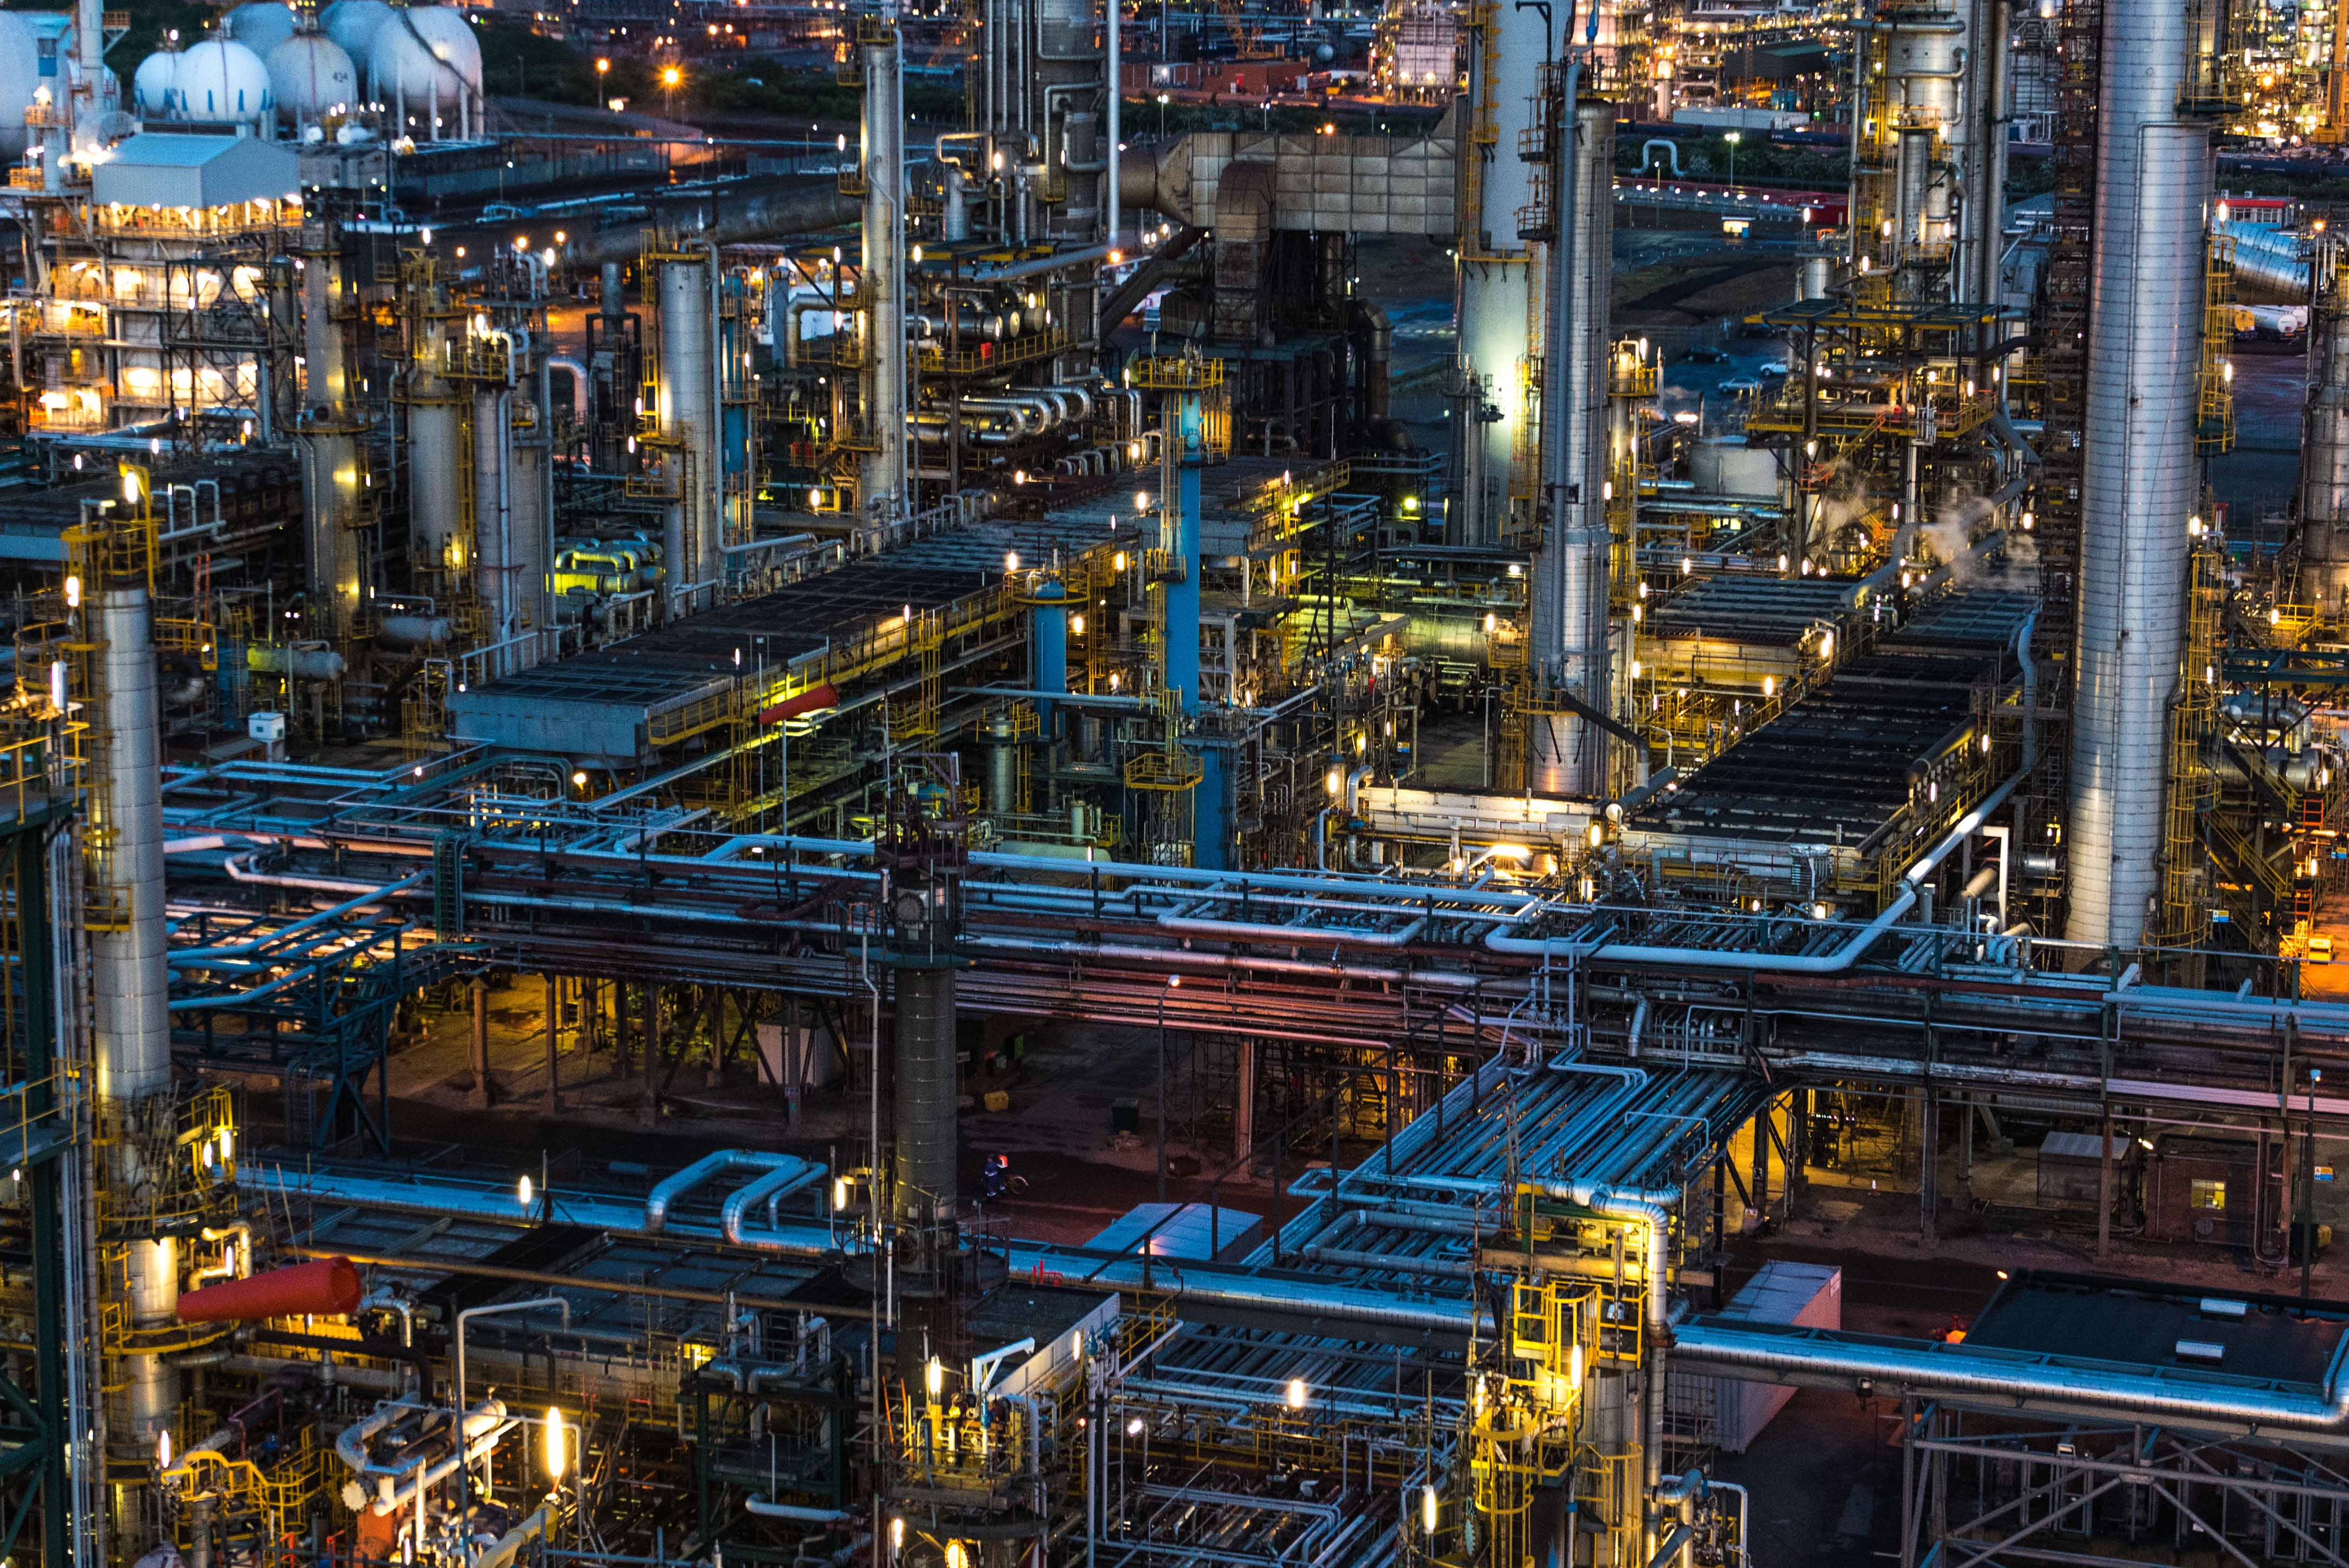 Lindsey-Oil-Refinery-At-Dusk